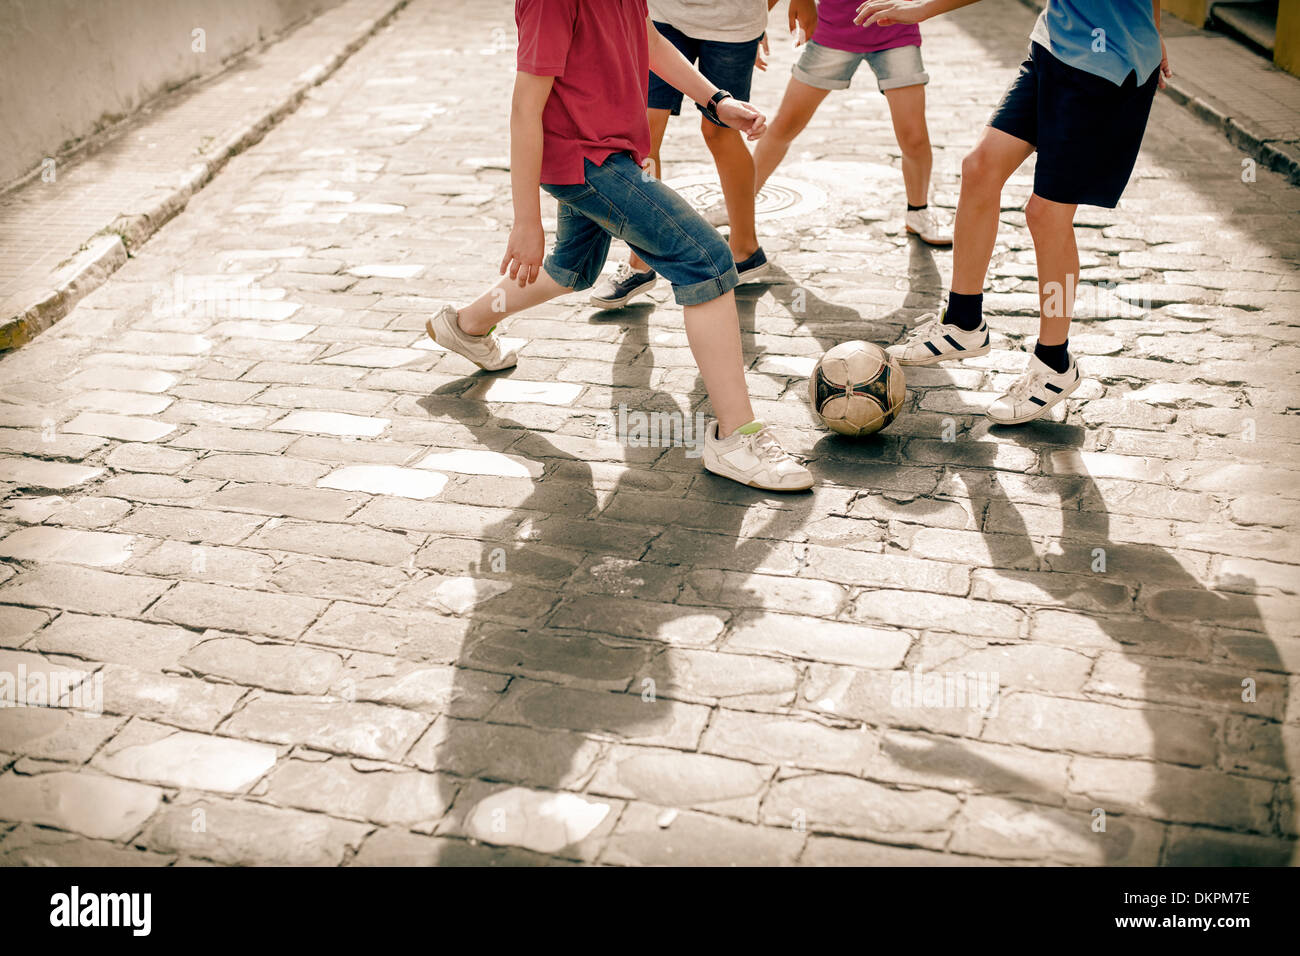 Children playing with soccer ball on cobblestone street - Stock Image